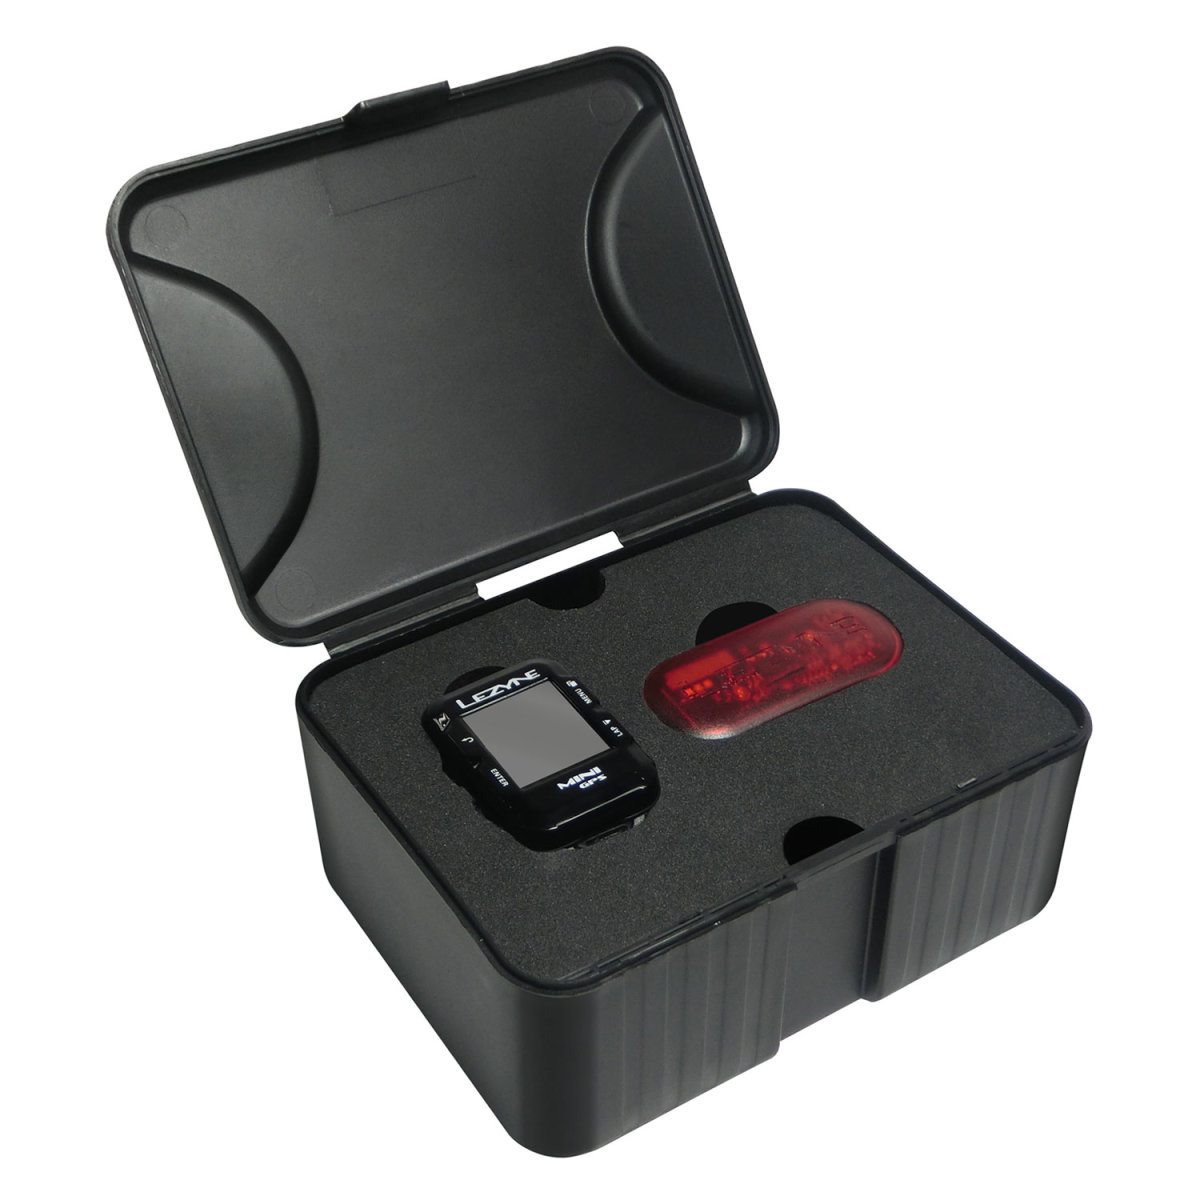 Компьютер Lezyne Mini GPS HR Loaded черный 9 Mini GPS HR Loaded 4712805 987269